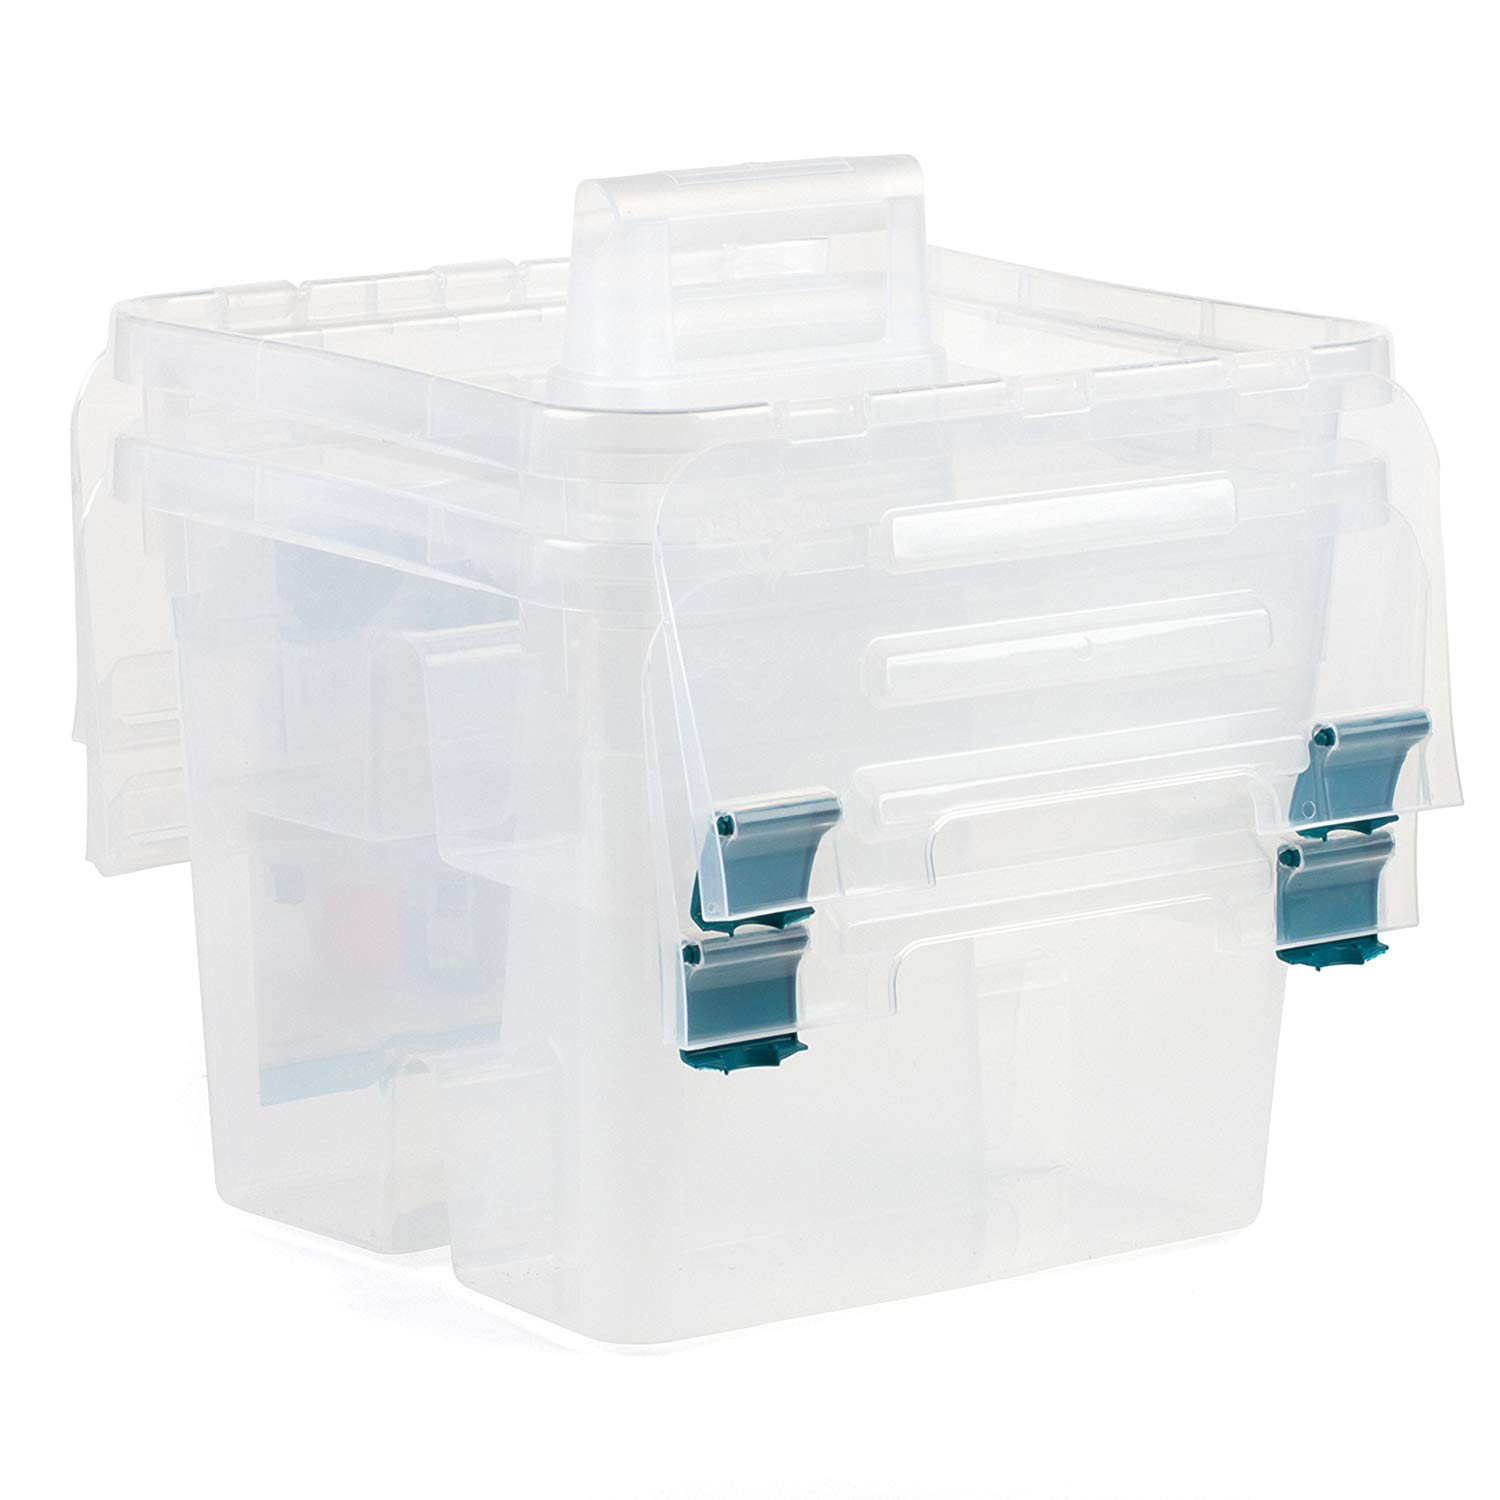 Beldray Diy Hobby Cleaning Caddy With Lid Small Clear